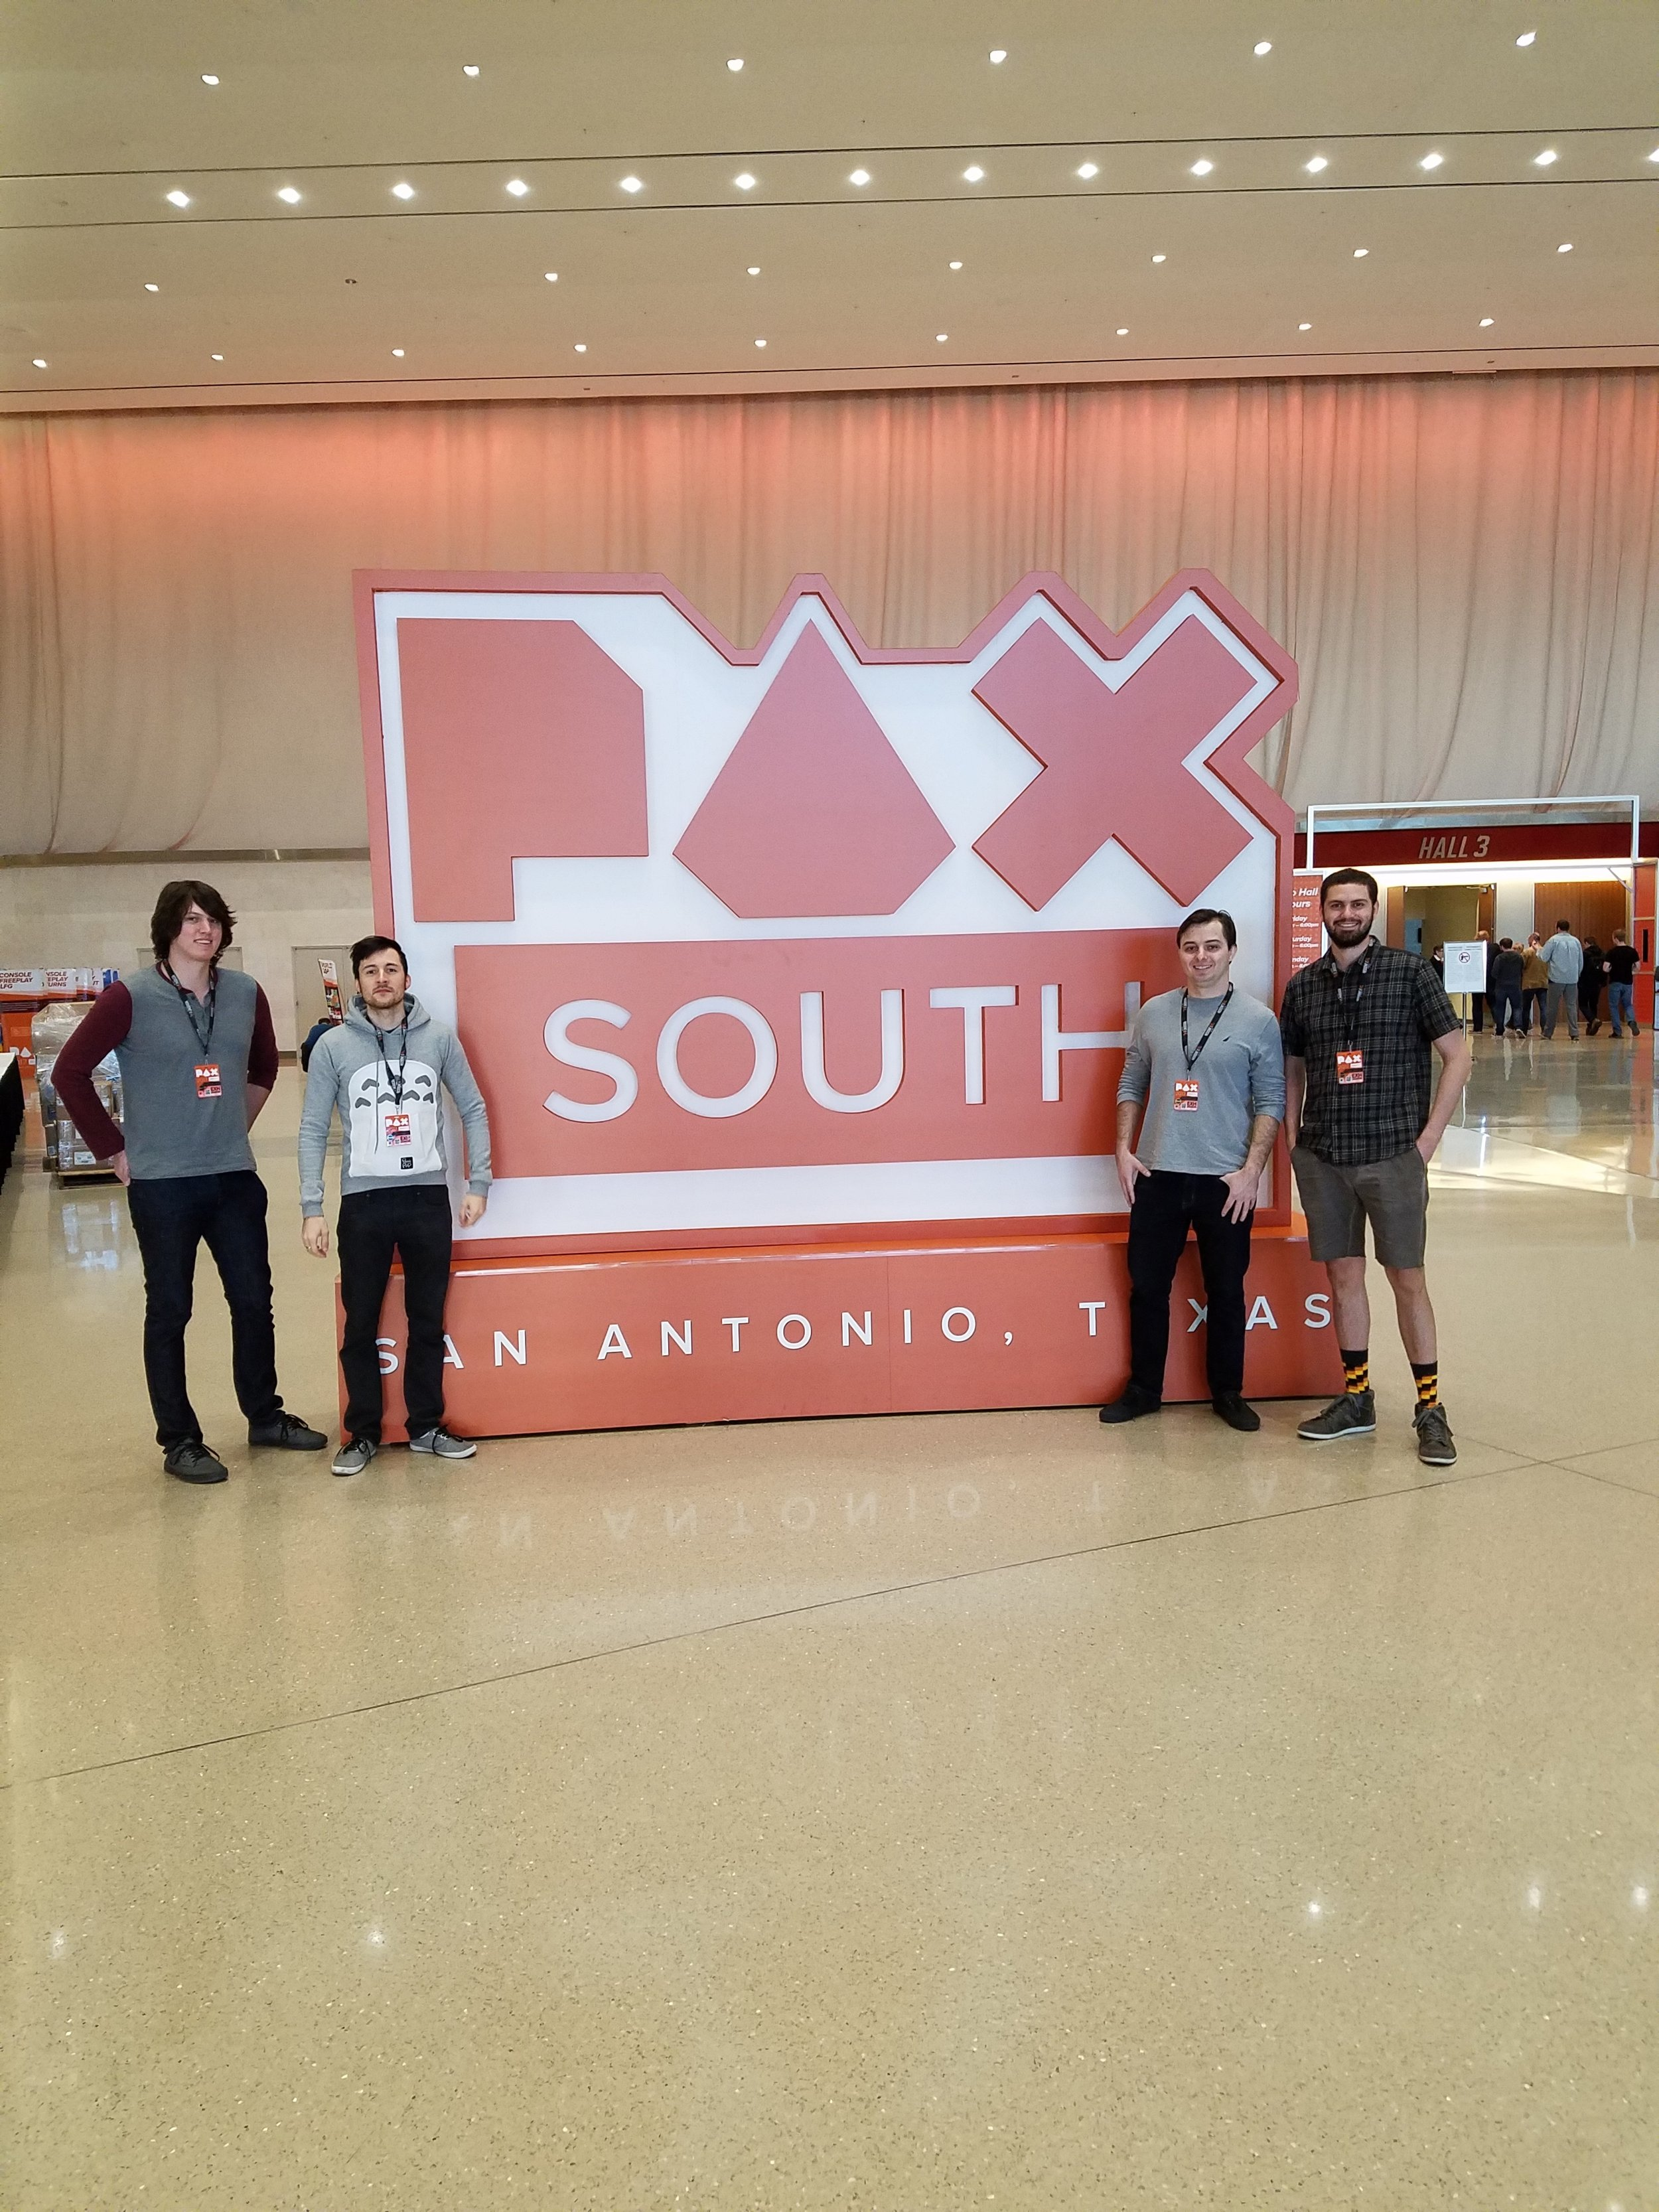 PAX South. - (From left to right) Nick Rea, Peter Milko, Sean Pinnock, and PJ Legendre host the Blacksea Odyssey booth at PAX South in San Antonio, TX in 2017.